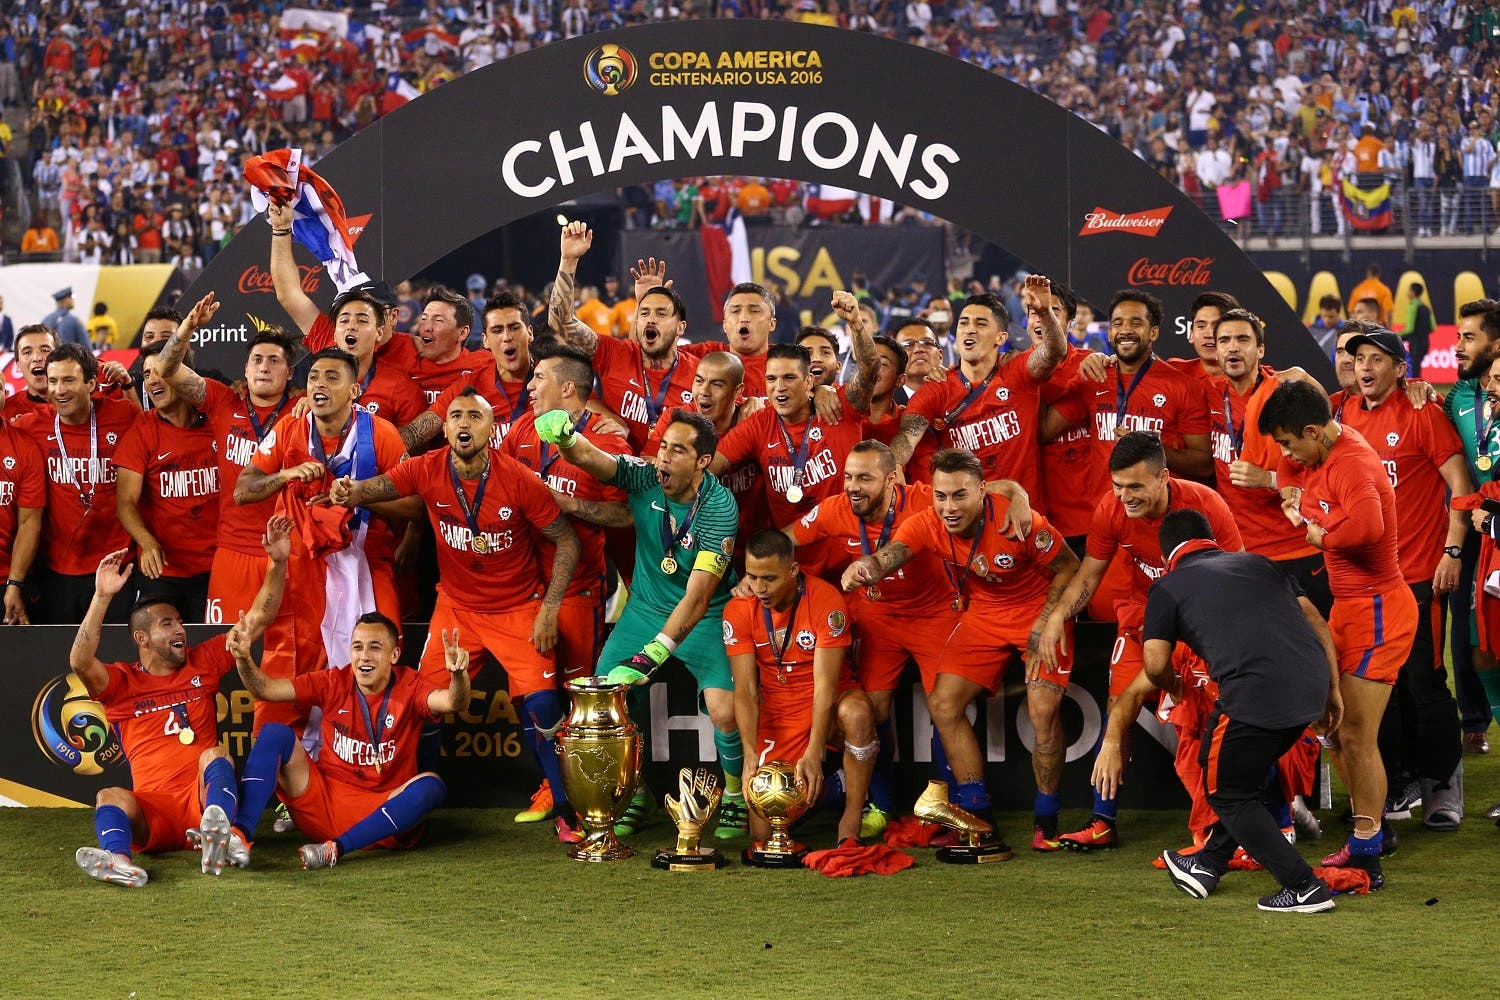 Chile poses for a photo with the championship trophy after winning the championship match of the 2016 Copa America Centenario soccer tournament against Argentina at MetLife Stadium. Chile defeated Argentina 0-0 (4-2). Mandatory Credit: Brad Penner-USA TODAY Sports